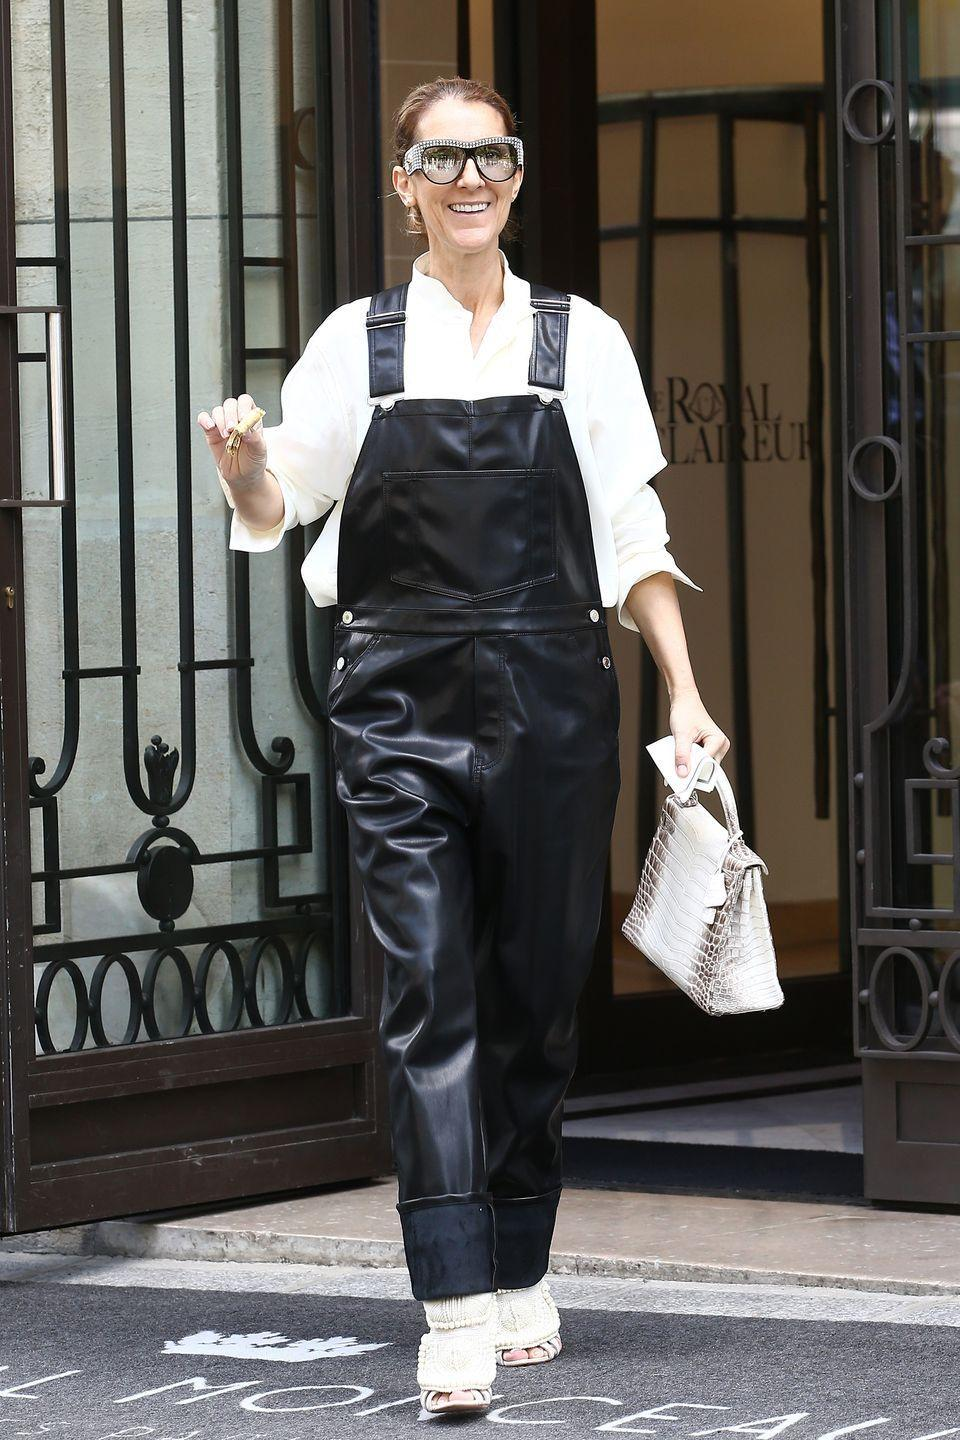 <p>In Givenchy faux leather overalls, a white button-down shirt, Kanye West x Giuseppe Zanotti sandals, and jewel-embellished sunglasses in Paris. </p>